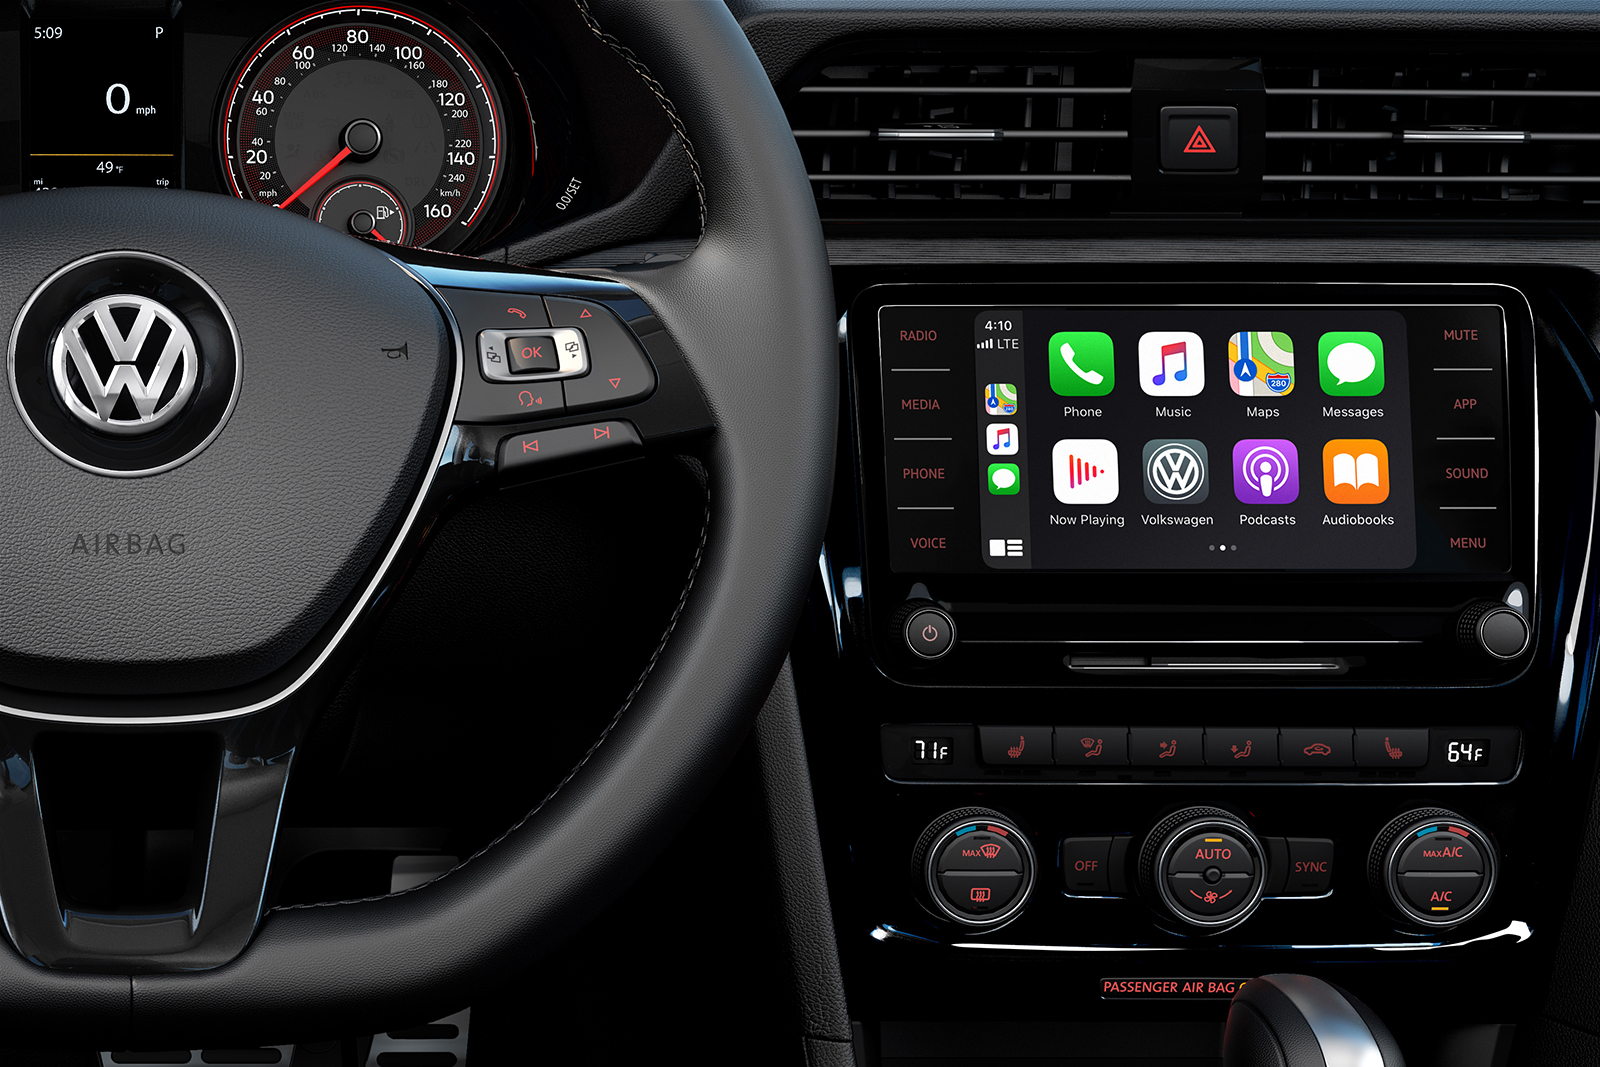 2020 Passat Touchscreen